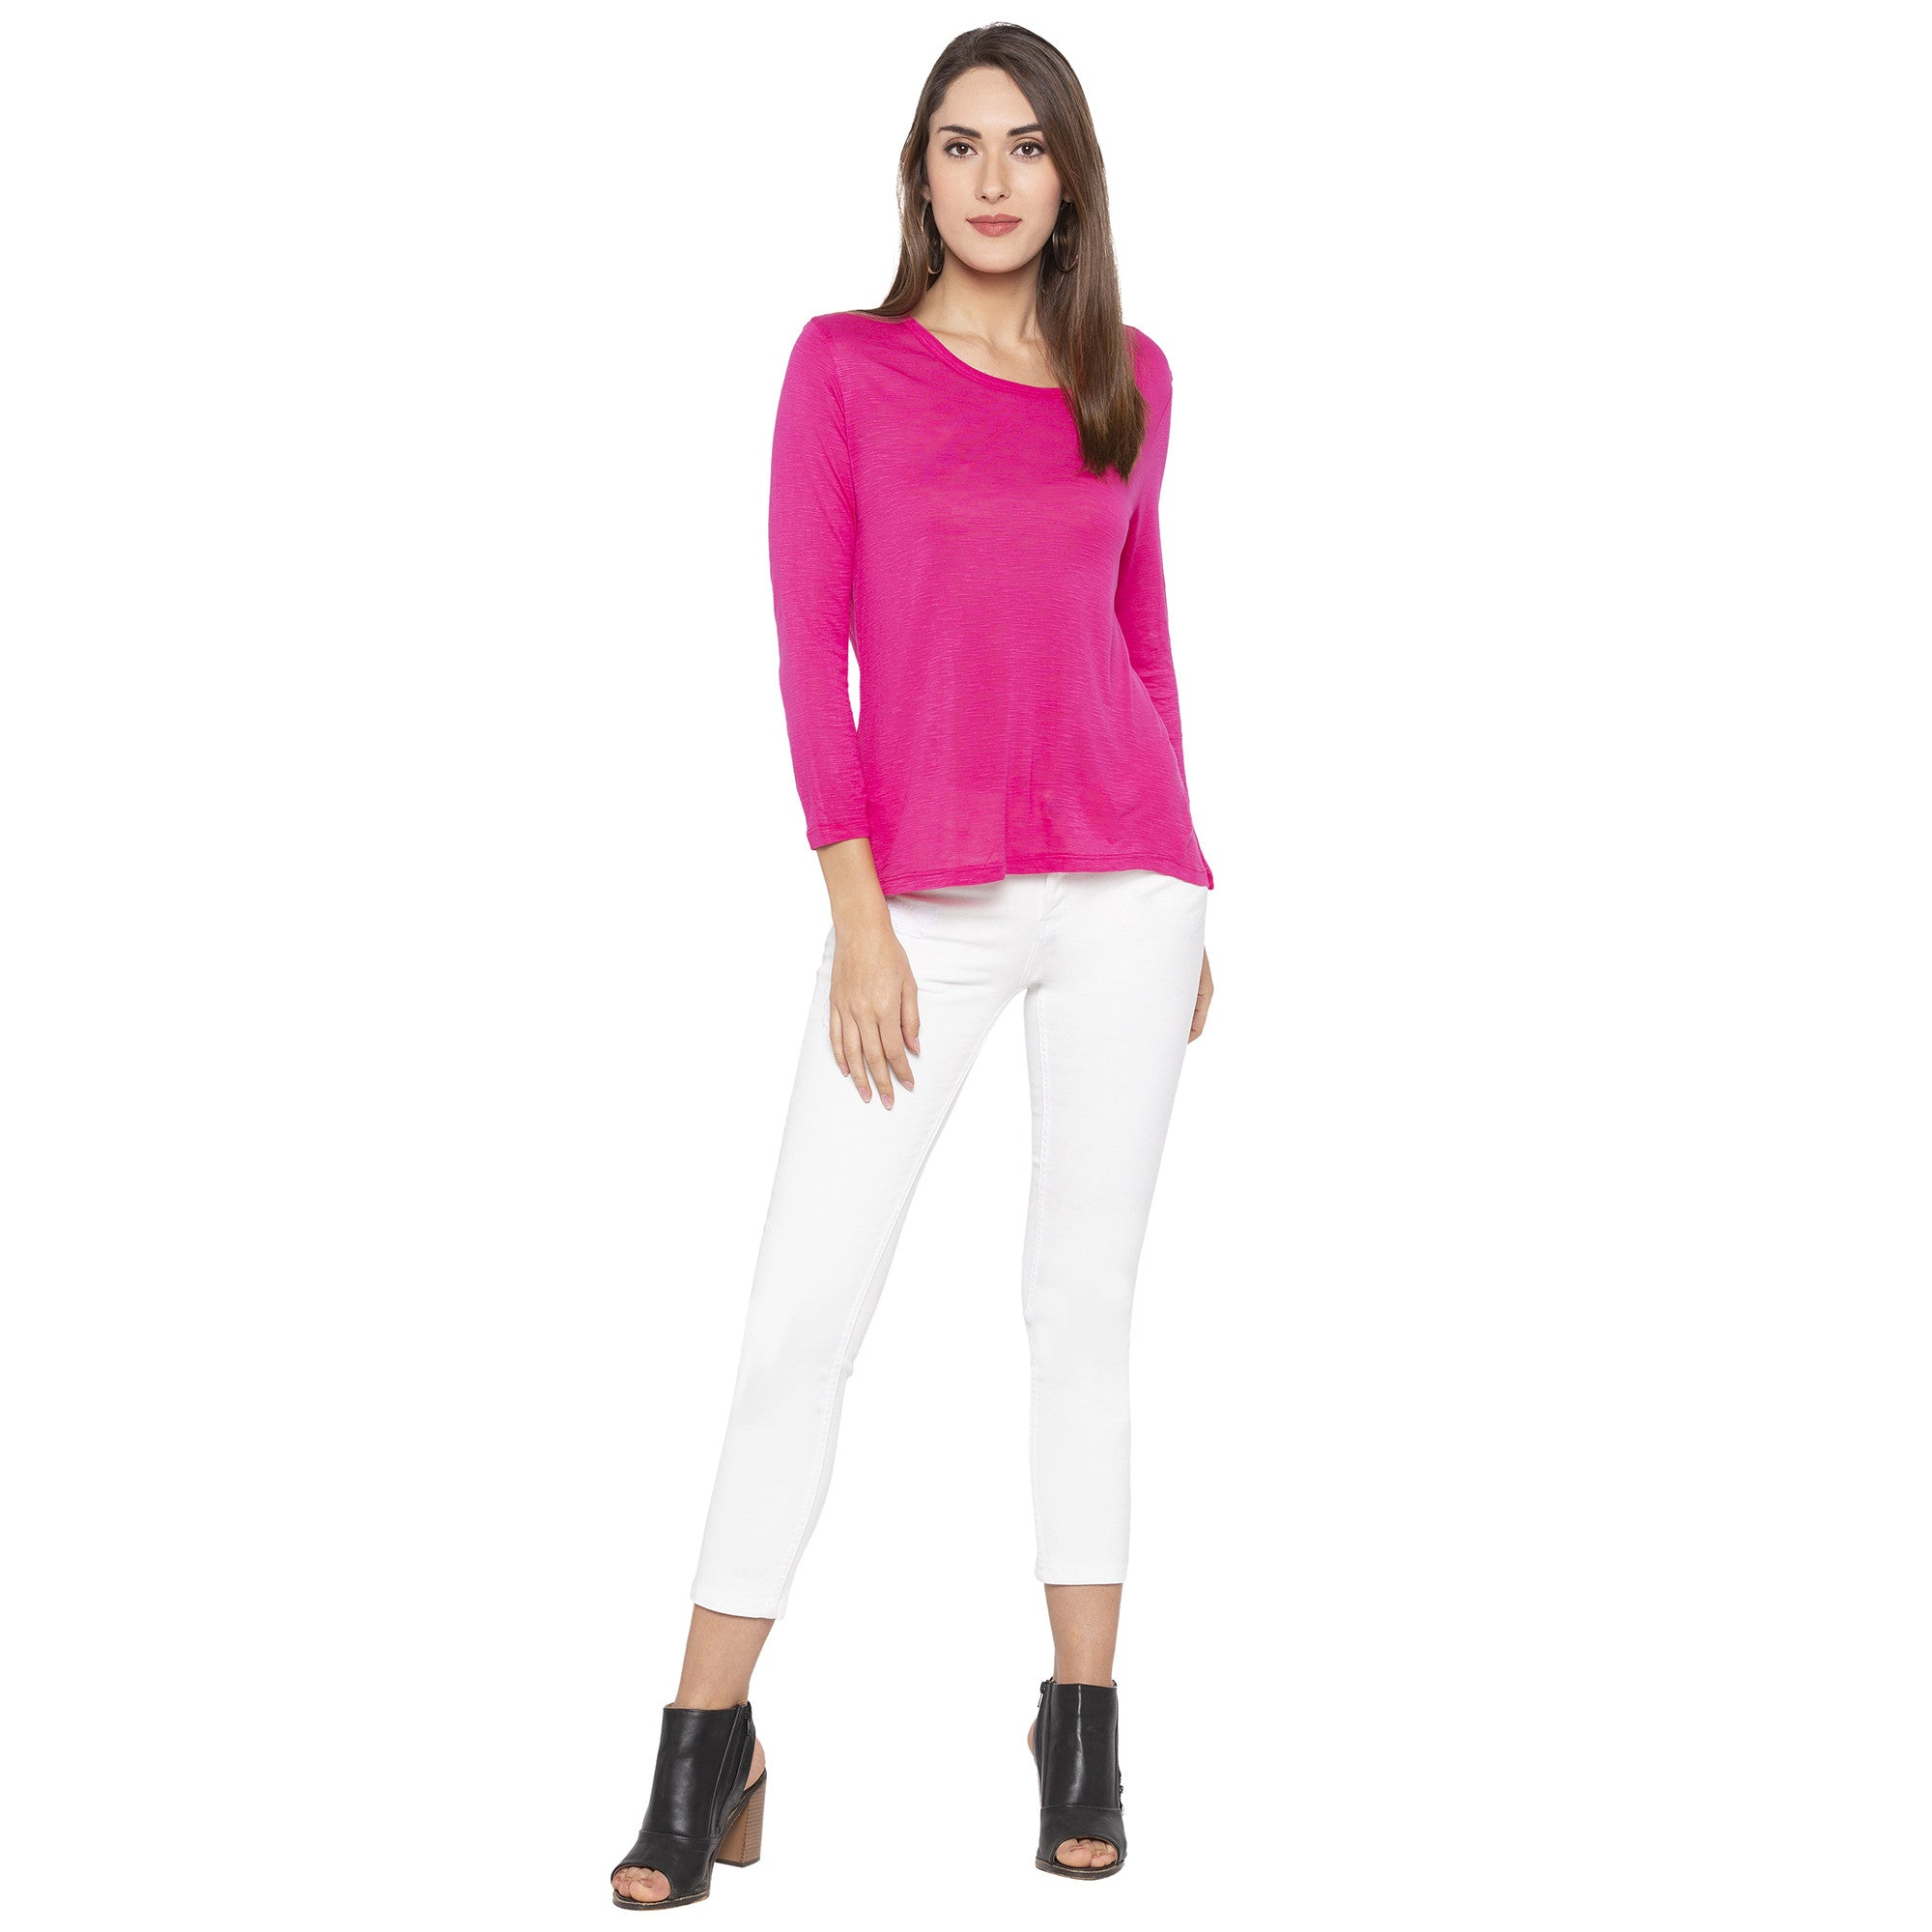 Casual Pink Color Solid Regular Fit Tops-4